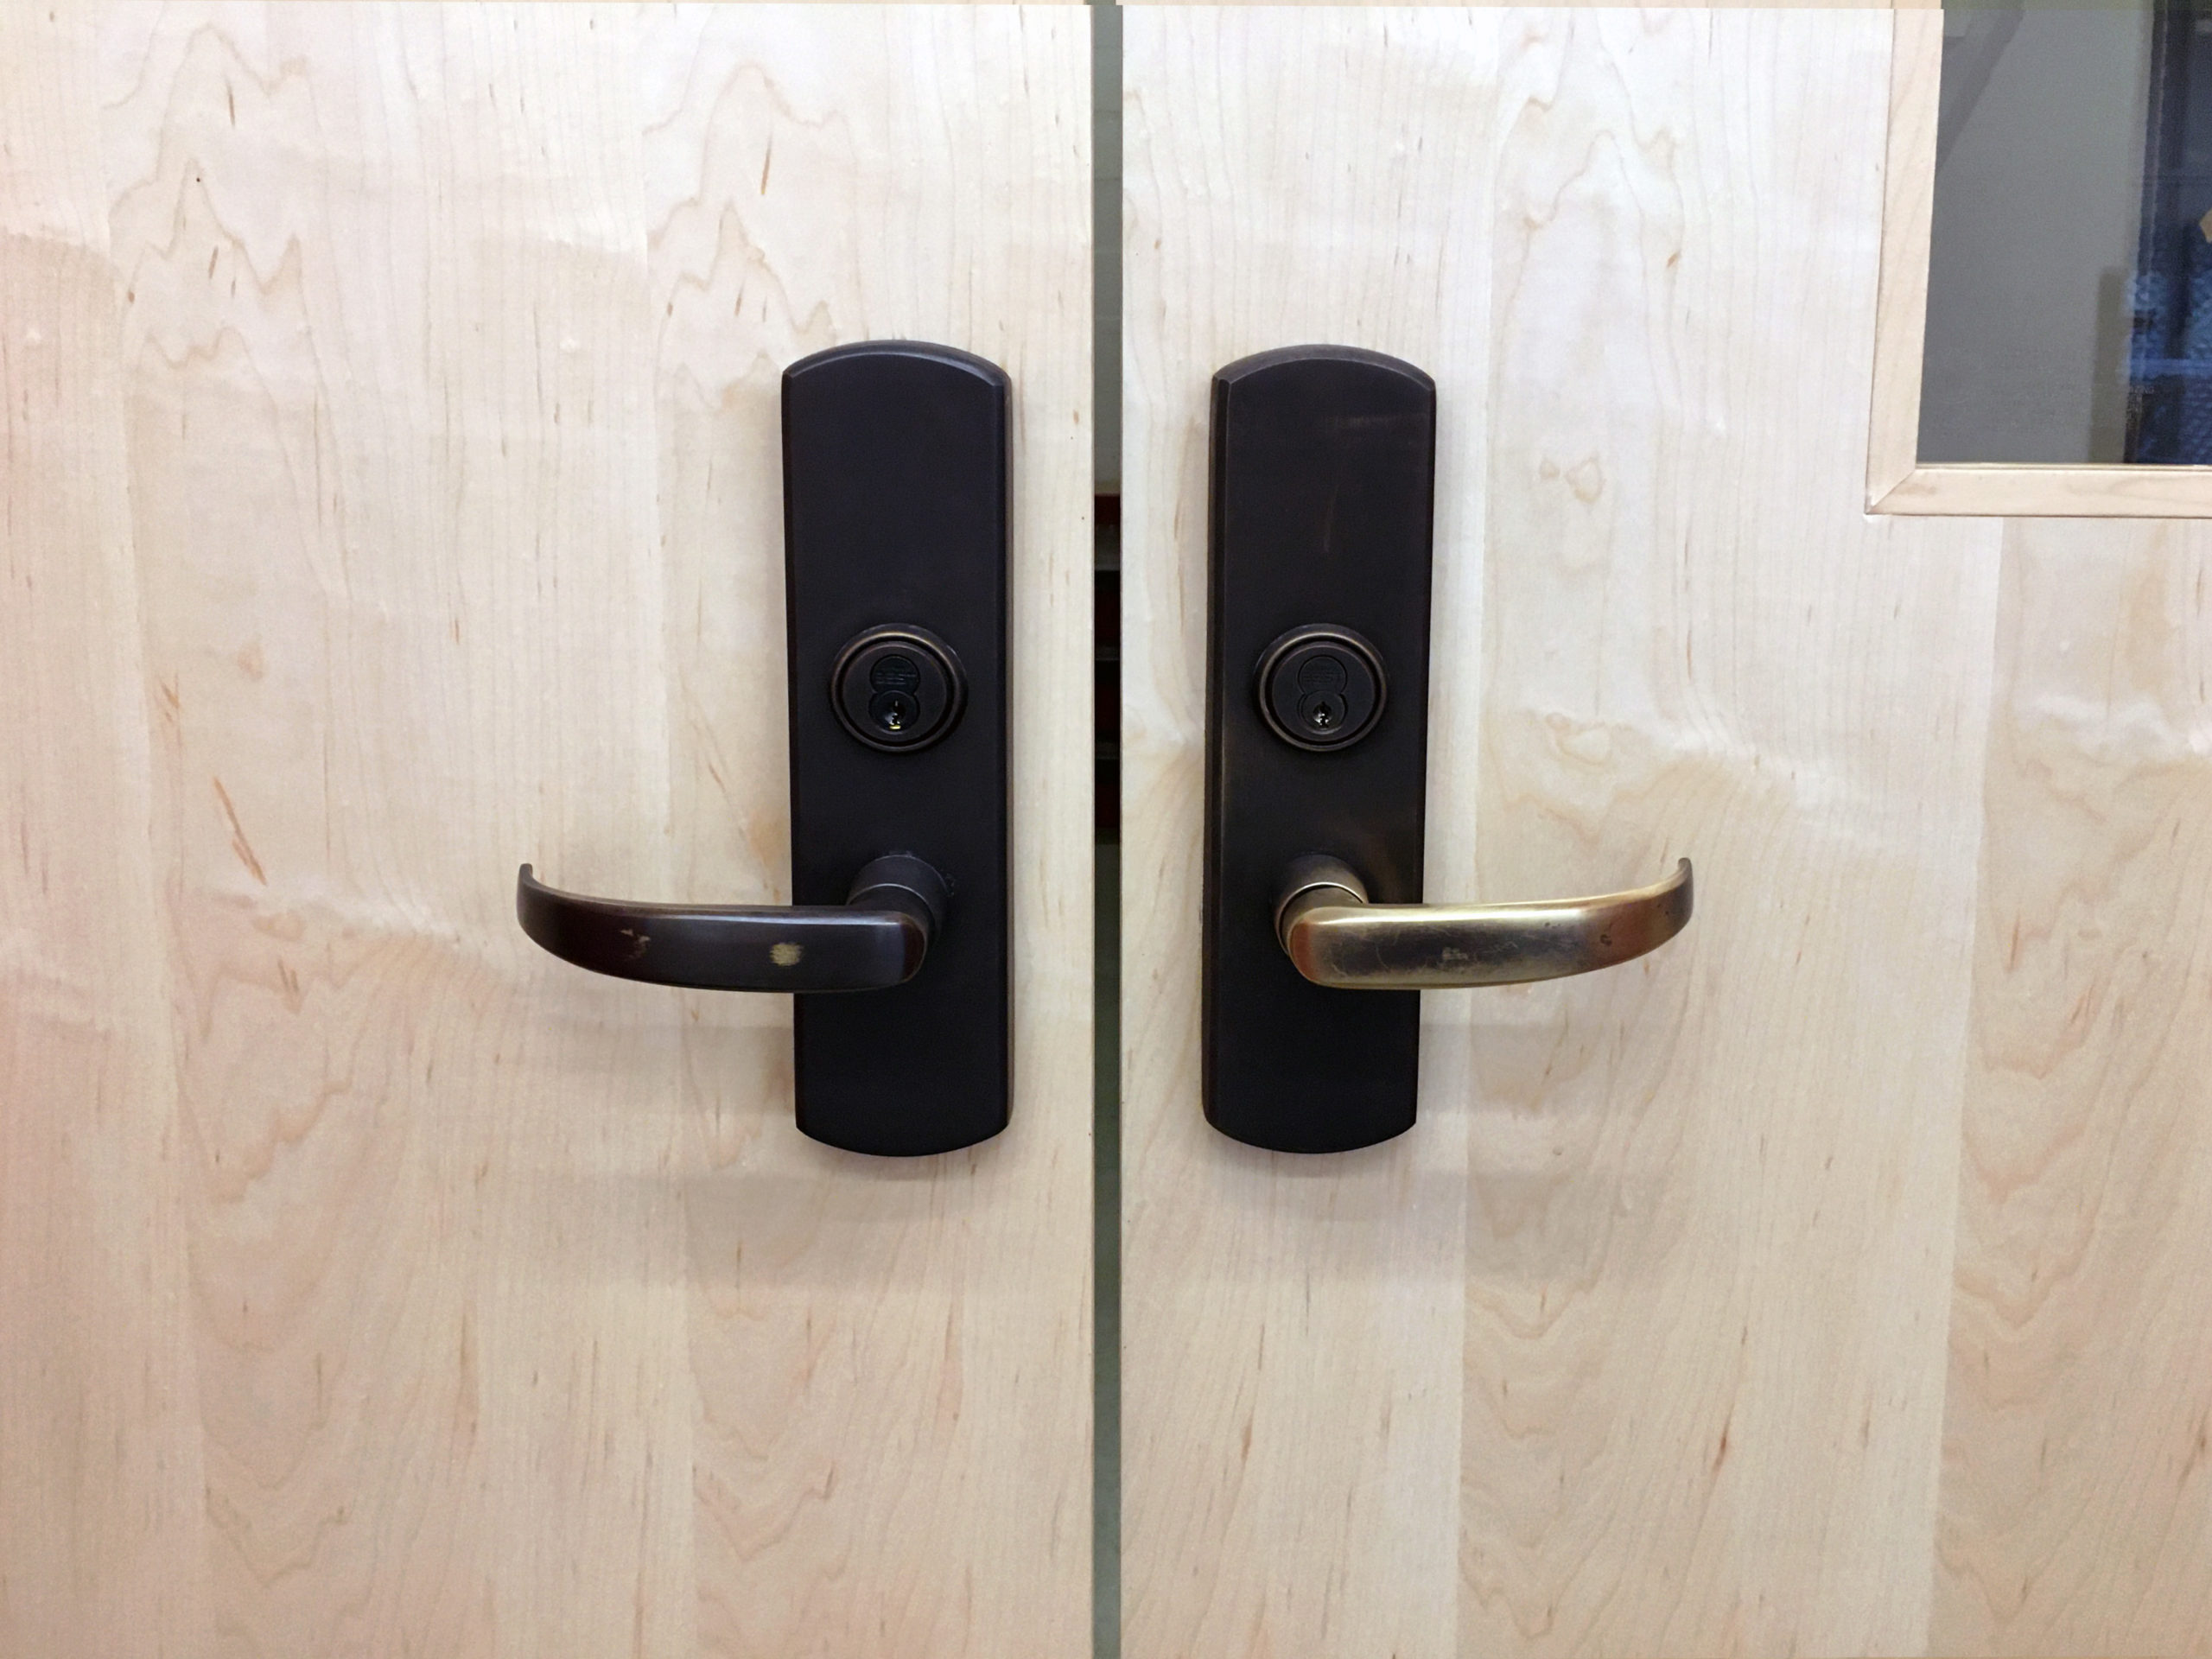 How You Are Persuaded to Open (or not Open) Doors